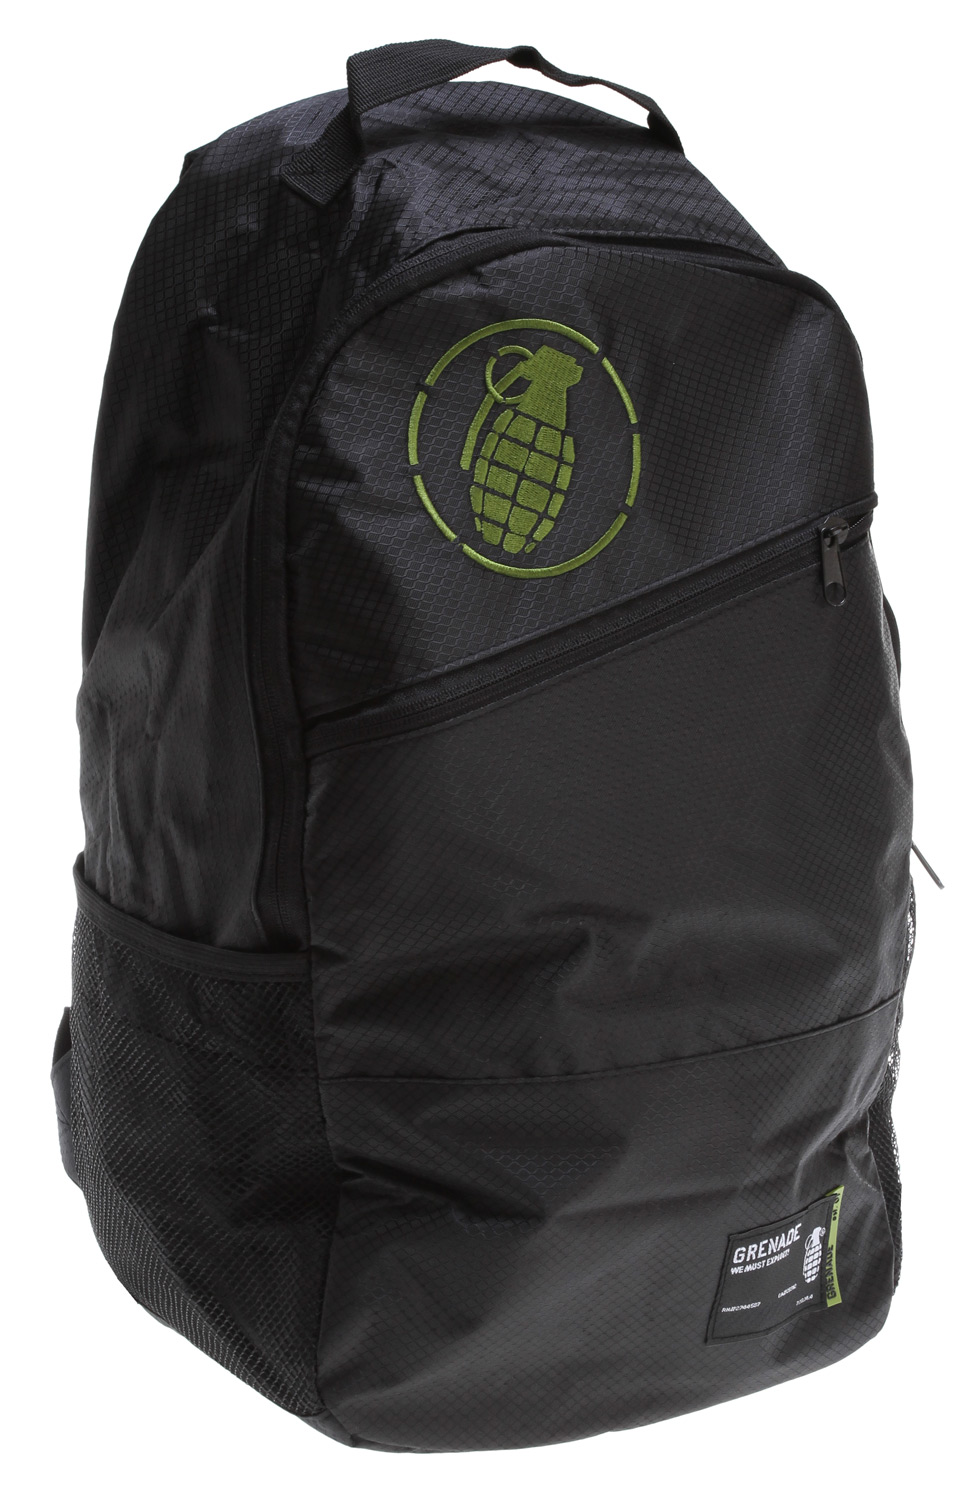 The Grenade The Steele Backpack really has your back. This bag will work for you whether you're out on a camping trip or want to use the backpack for school. Either way, it should be able to meet your needs. There's a spot for a water bottle so say good bye to fumbling around for a spot to put it! Also your laptop and devices will be protected or your head when you want to use it as a pillow or a bus or in the corner somewhere because it has a padded back.Key Features of the Grenade The Steele Backpack : Internal multi-purpose pockets External water bottle pocket Waterproof fabric Padded back - $23.95